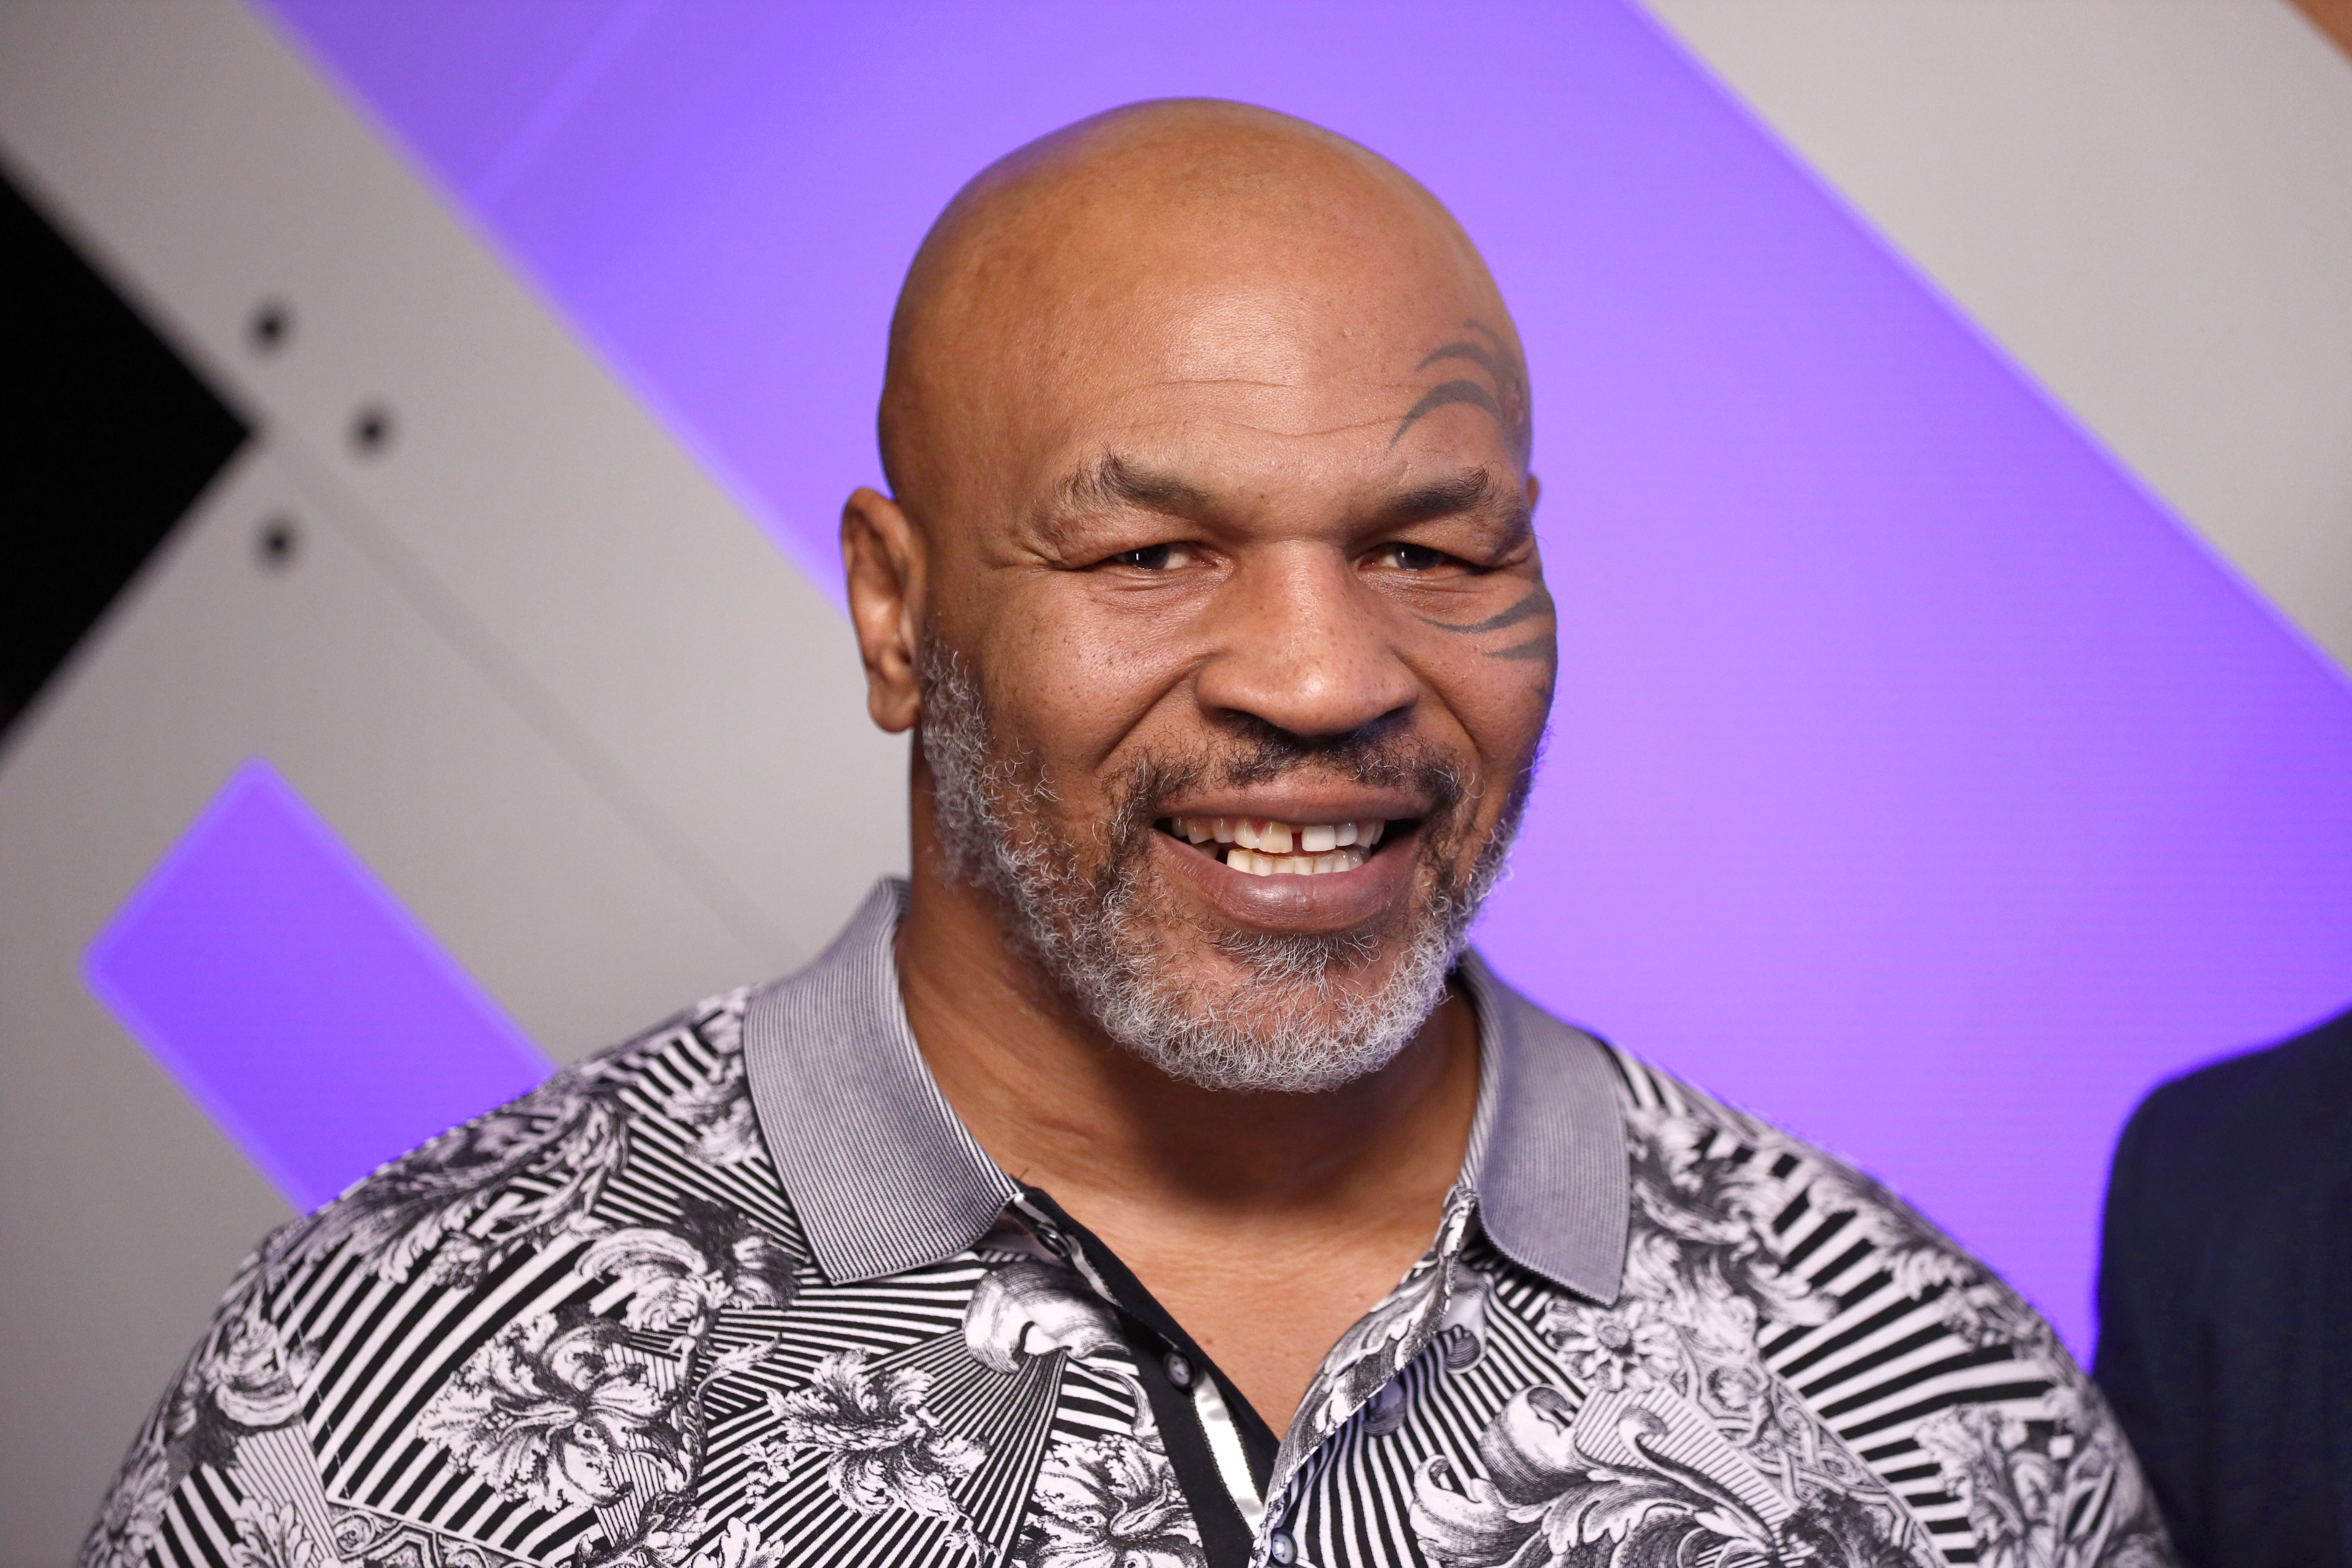 Mike Tyson during the 2019 iHeartRadio Podcast Awards at the iHeartRadio Theater LA on January 18, 2019   Photo: Getty Images